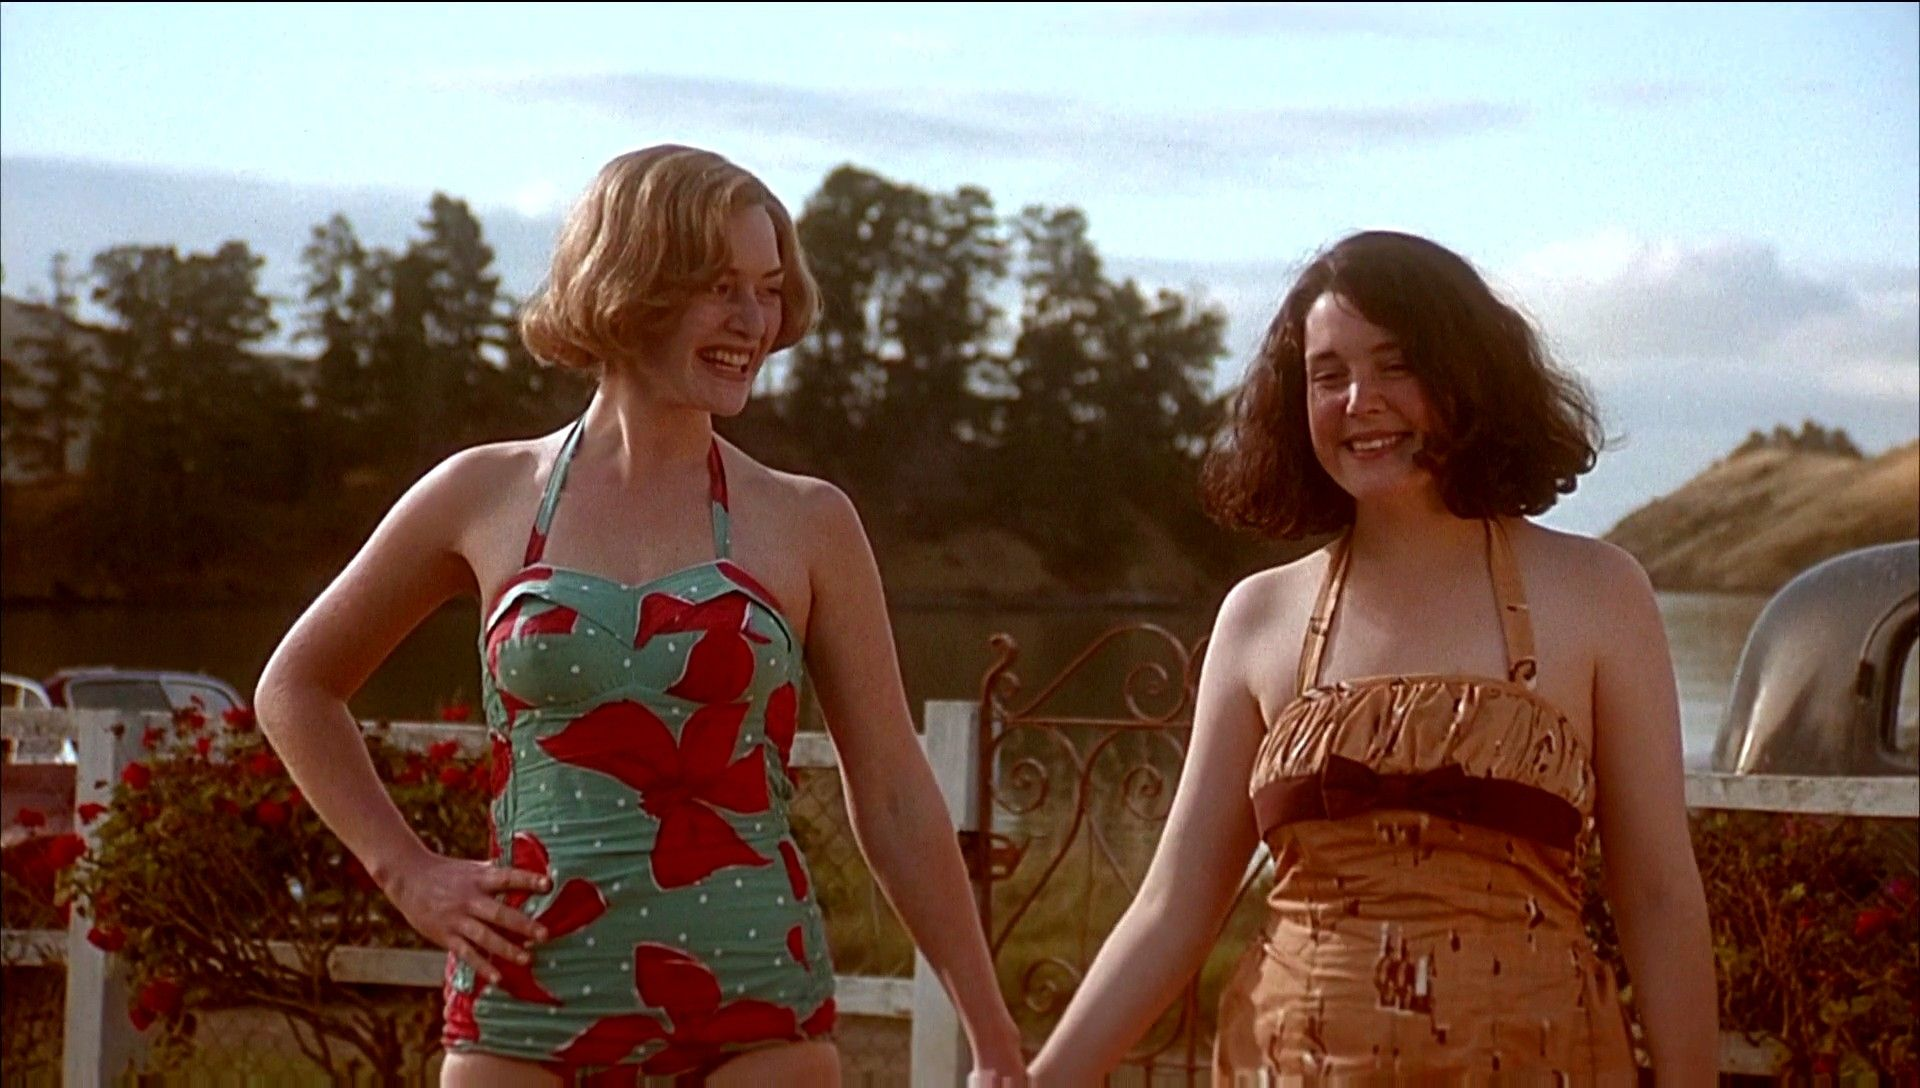 an analysis of the movie heavenly creatures directed by peter jackson It's directed by peter jackson having read a bit of the case outside of what this movie peter jackson did a remarkable job on heavenly creatures when.